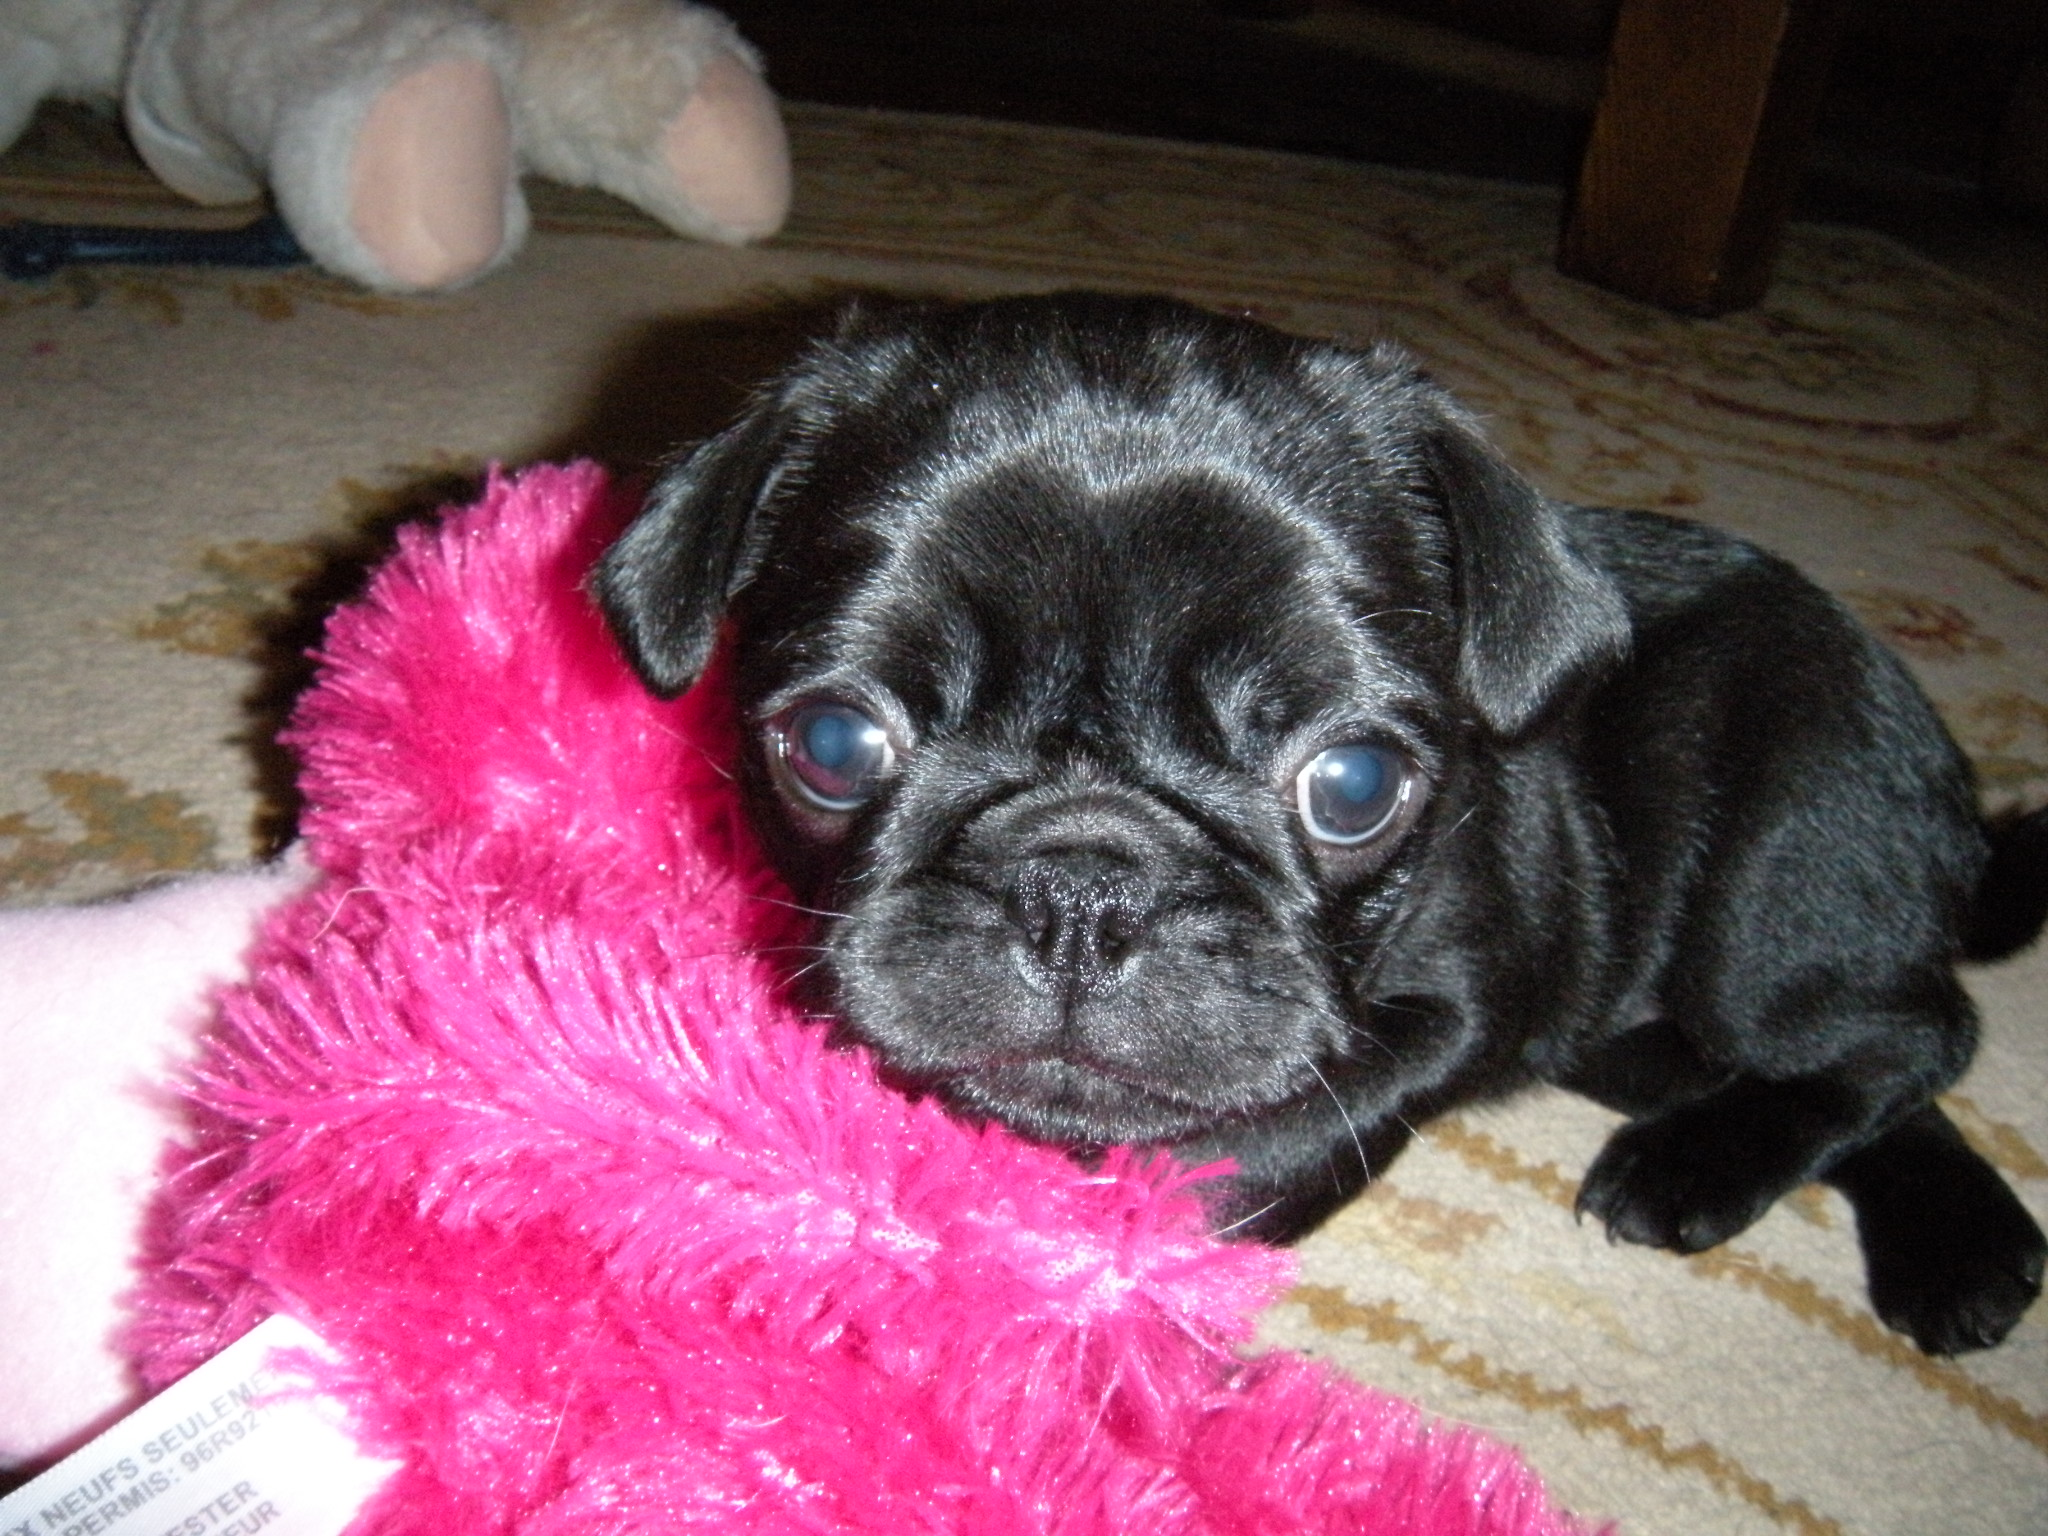 Lilly Pug Baby Black Pugs Puppy Outside Dogs City Data Forum